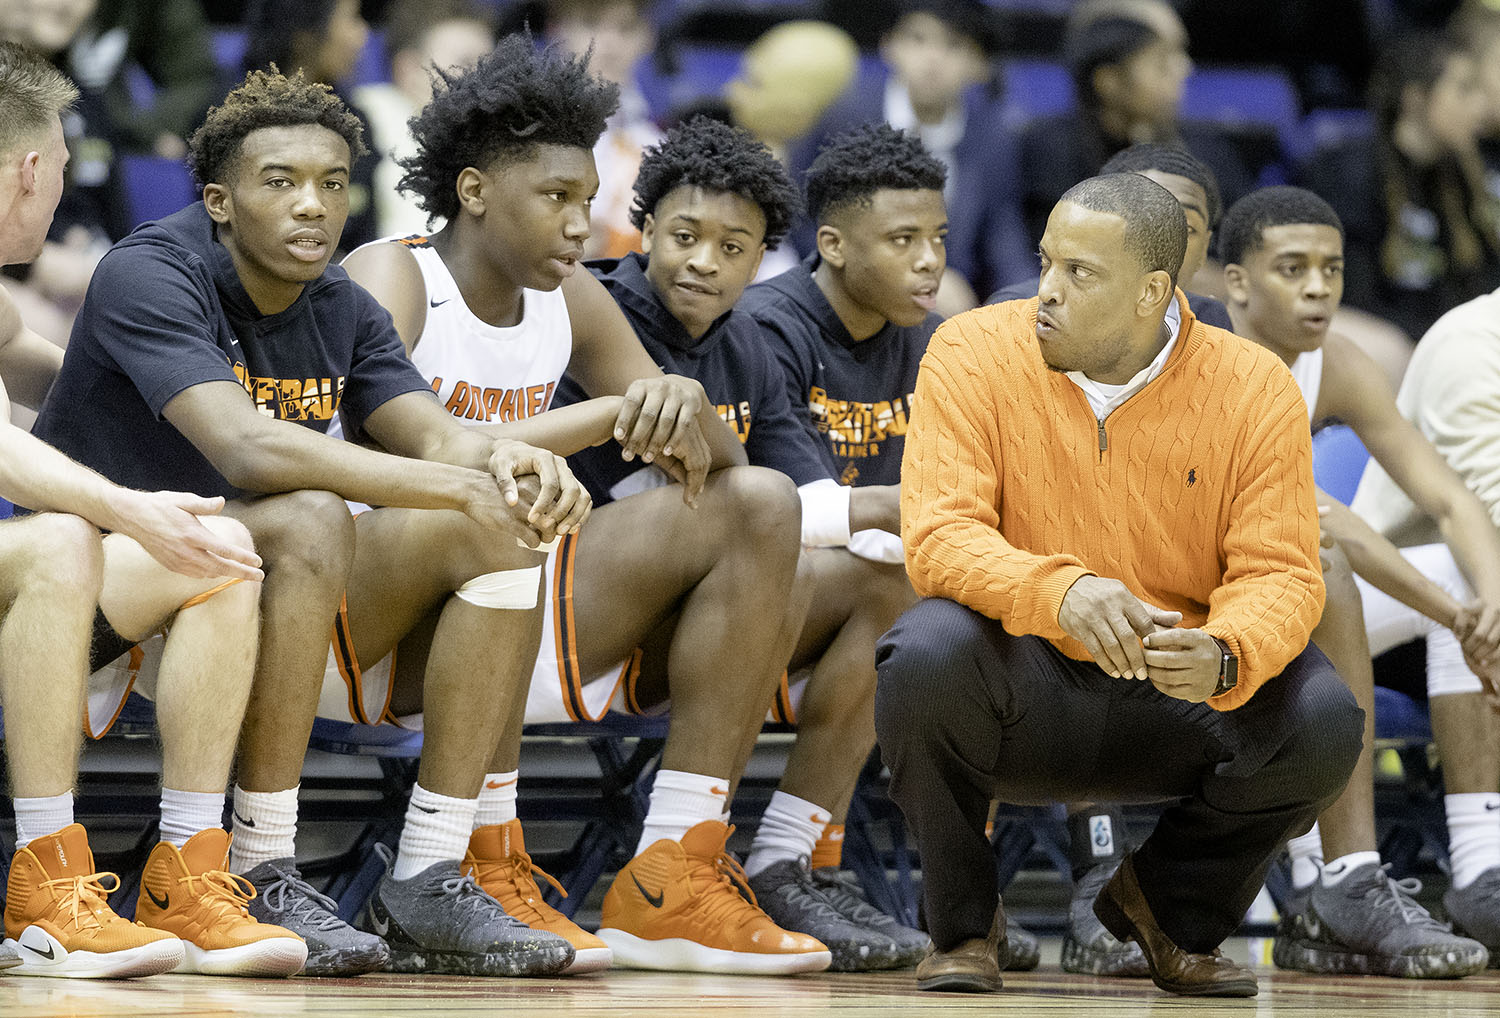 Lanphier head coach Blake Turner gives his bench a look as they fall behind by double digits in the first half against Springfield during the Boys City Tournament at the Bank of Springfield Center Friday, Jan. 18, 2019.  [Ted Schurter/The State Journal-Register]